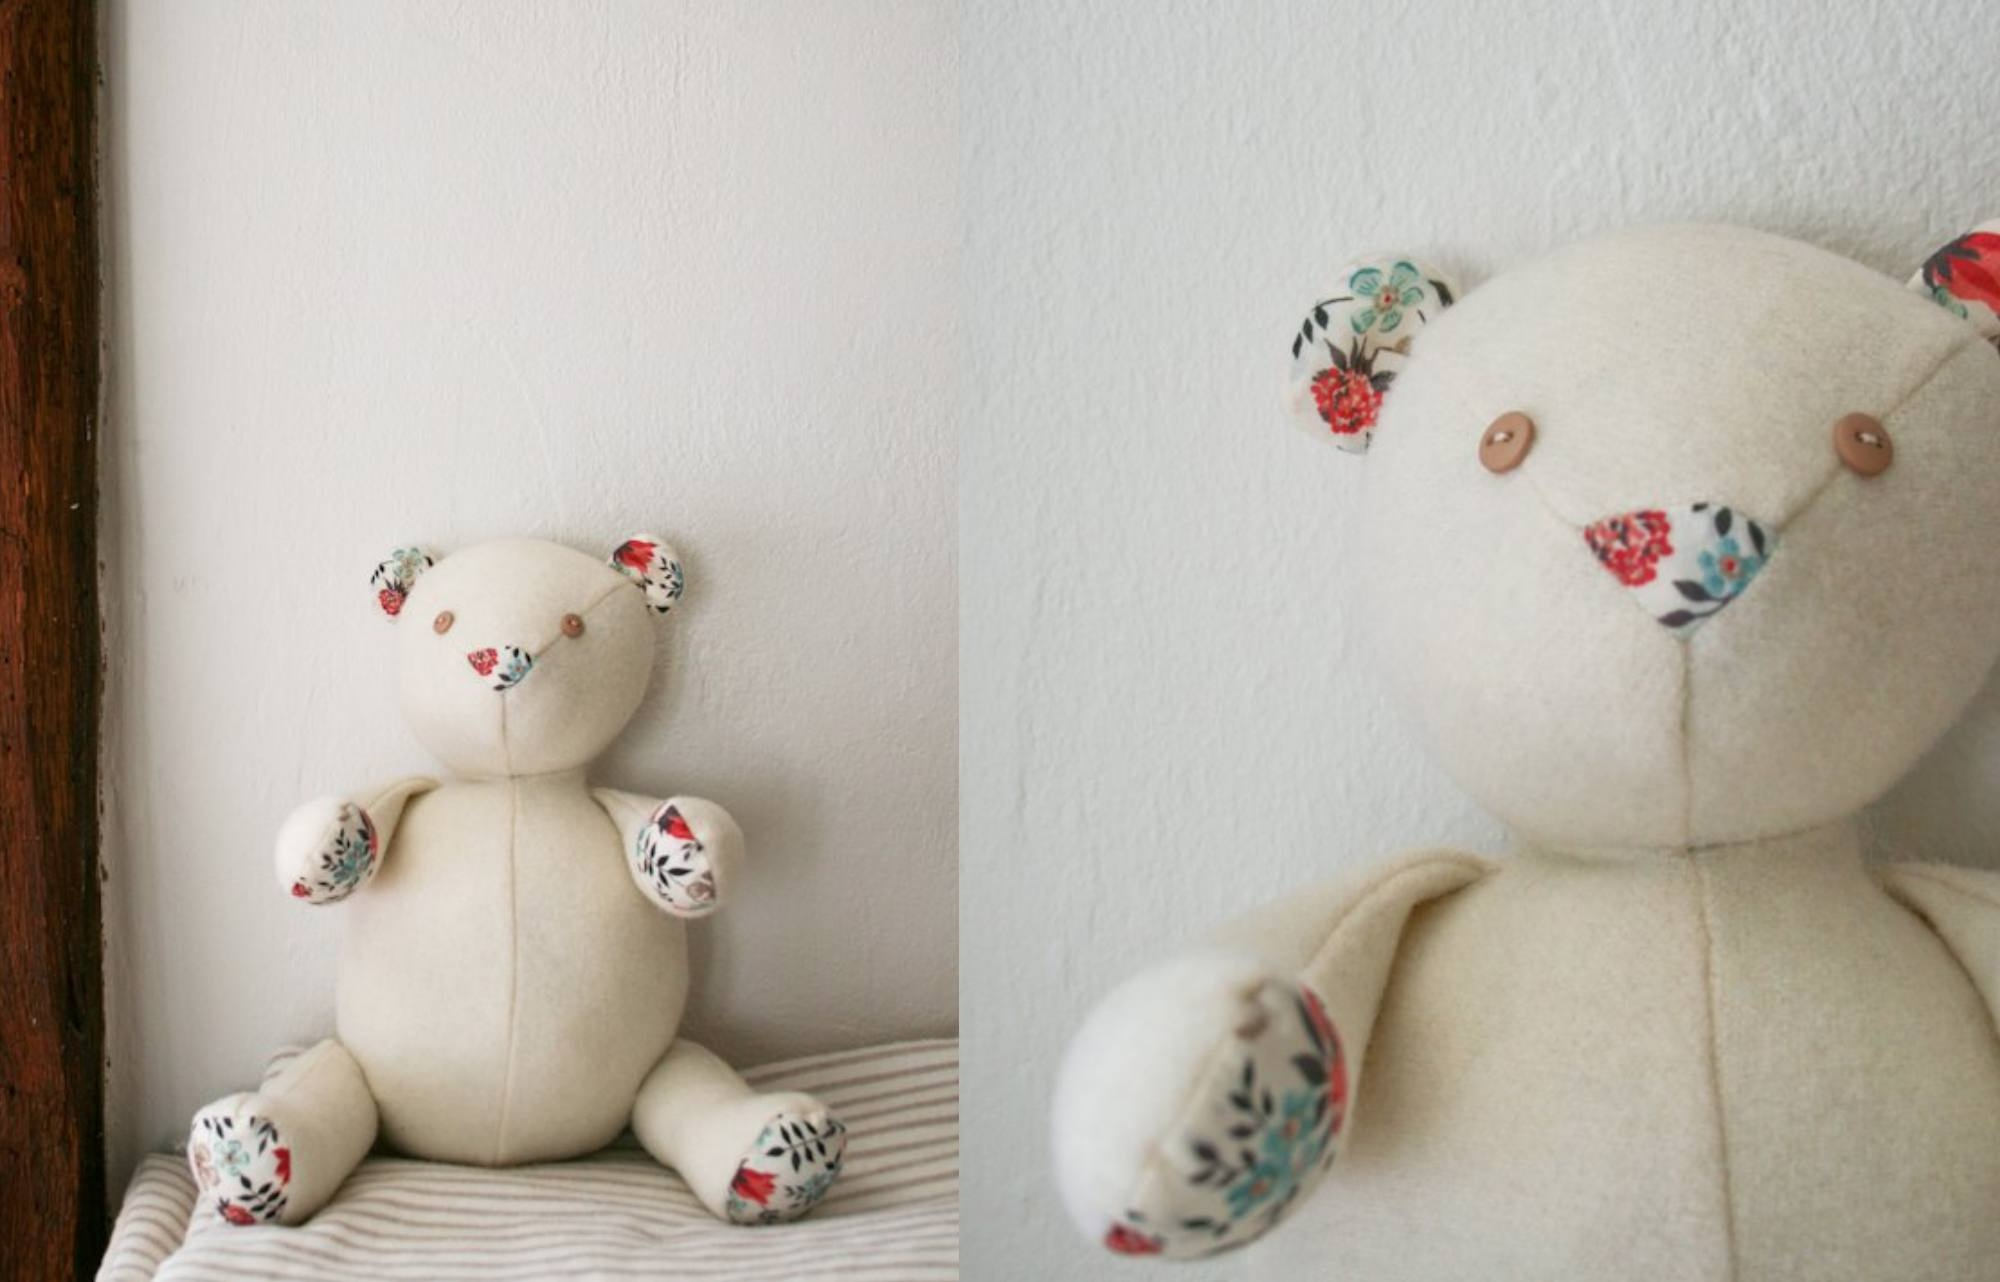 10 Adorable Teddy Bear Sewing Patterns - Free Printable Patchwork Teddy Bear Pattern